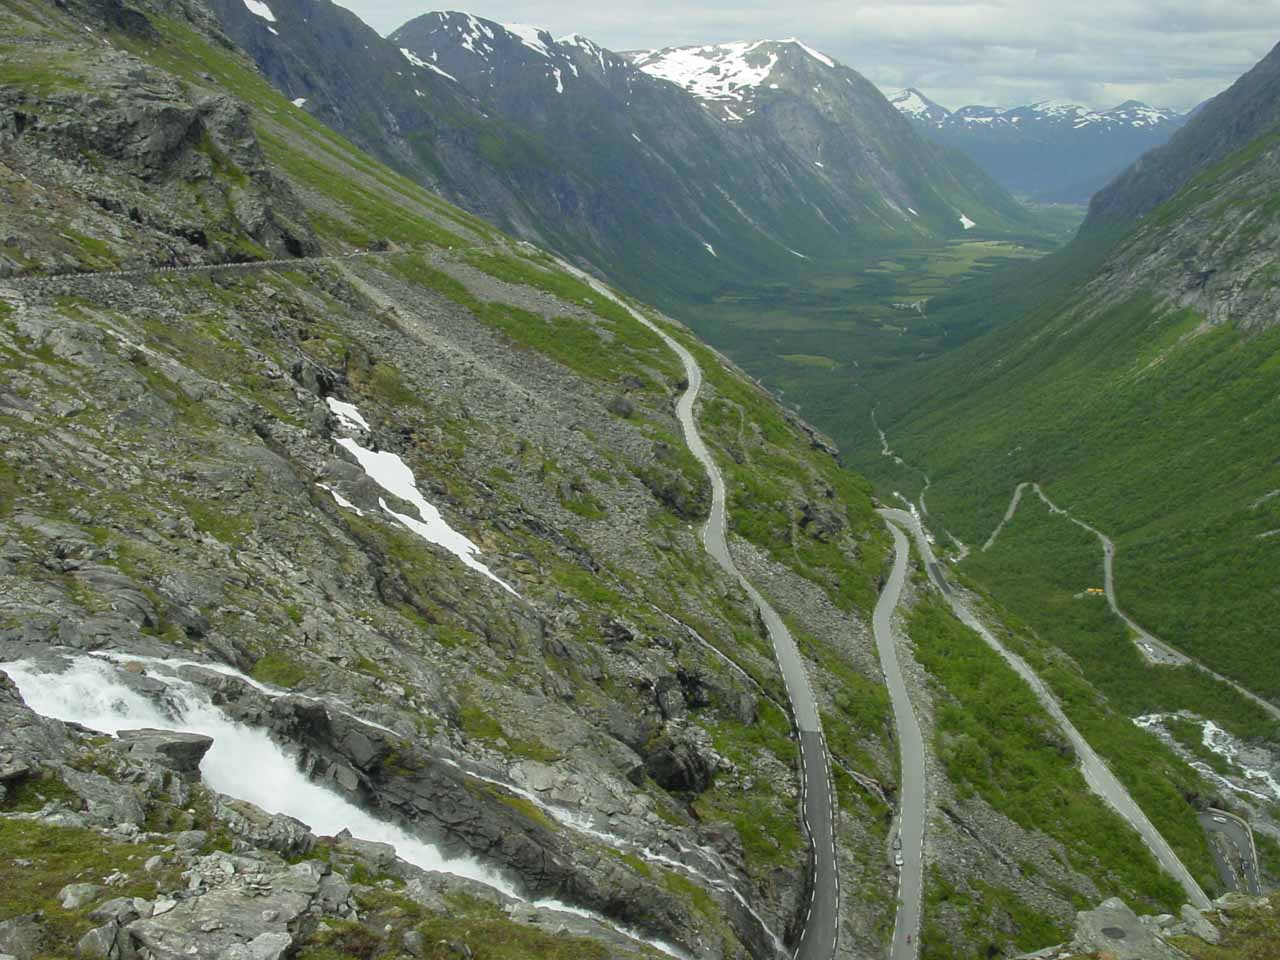 Speaking of Trollstigen, we managed to do the steep and winding serpentine road, and at its top was this view over Stigfossen towards the valley Isterdalen